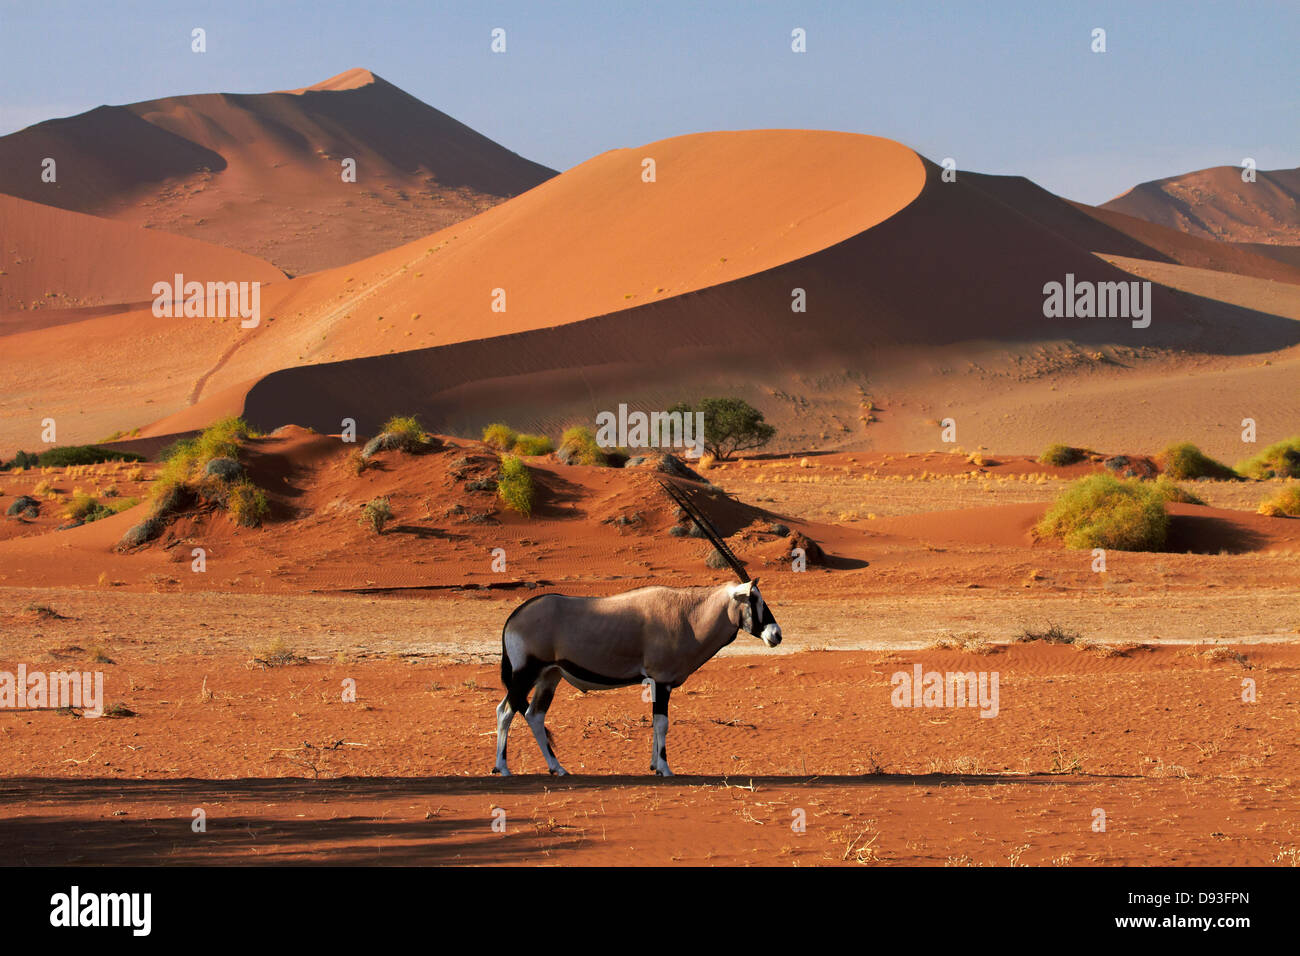 Gemsbok (oryx), and sand dunes, Namib-Naukluft National Park, Namibia, Africa - Stock Image